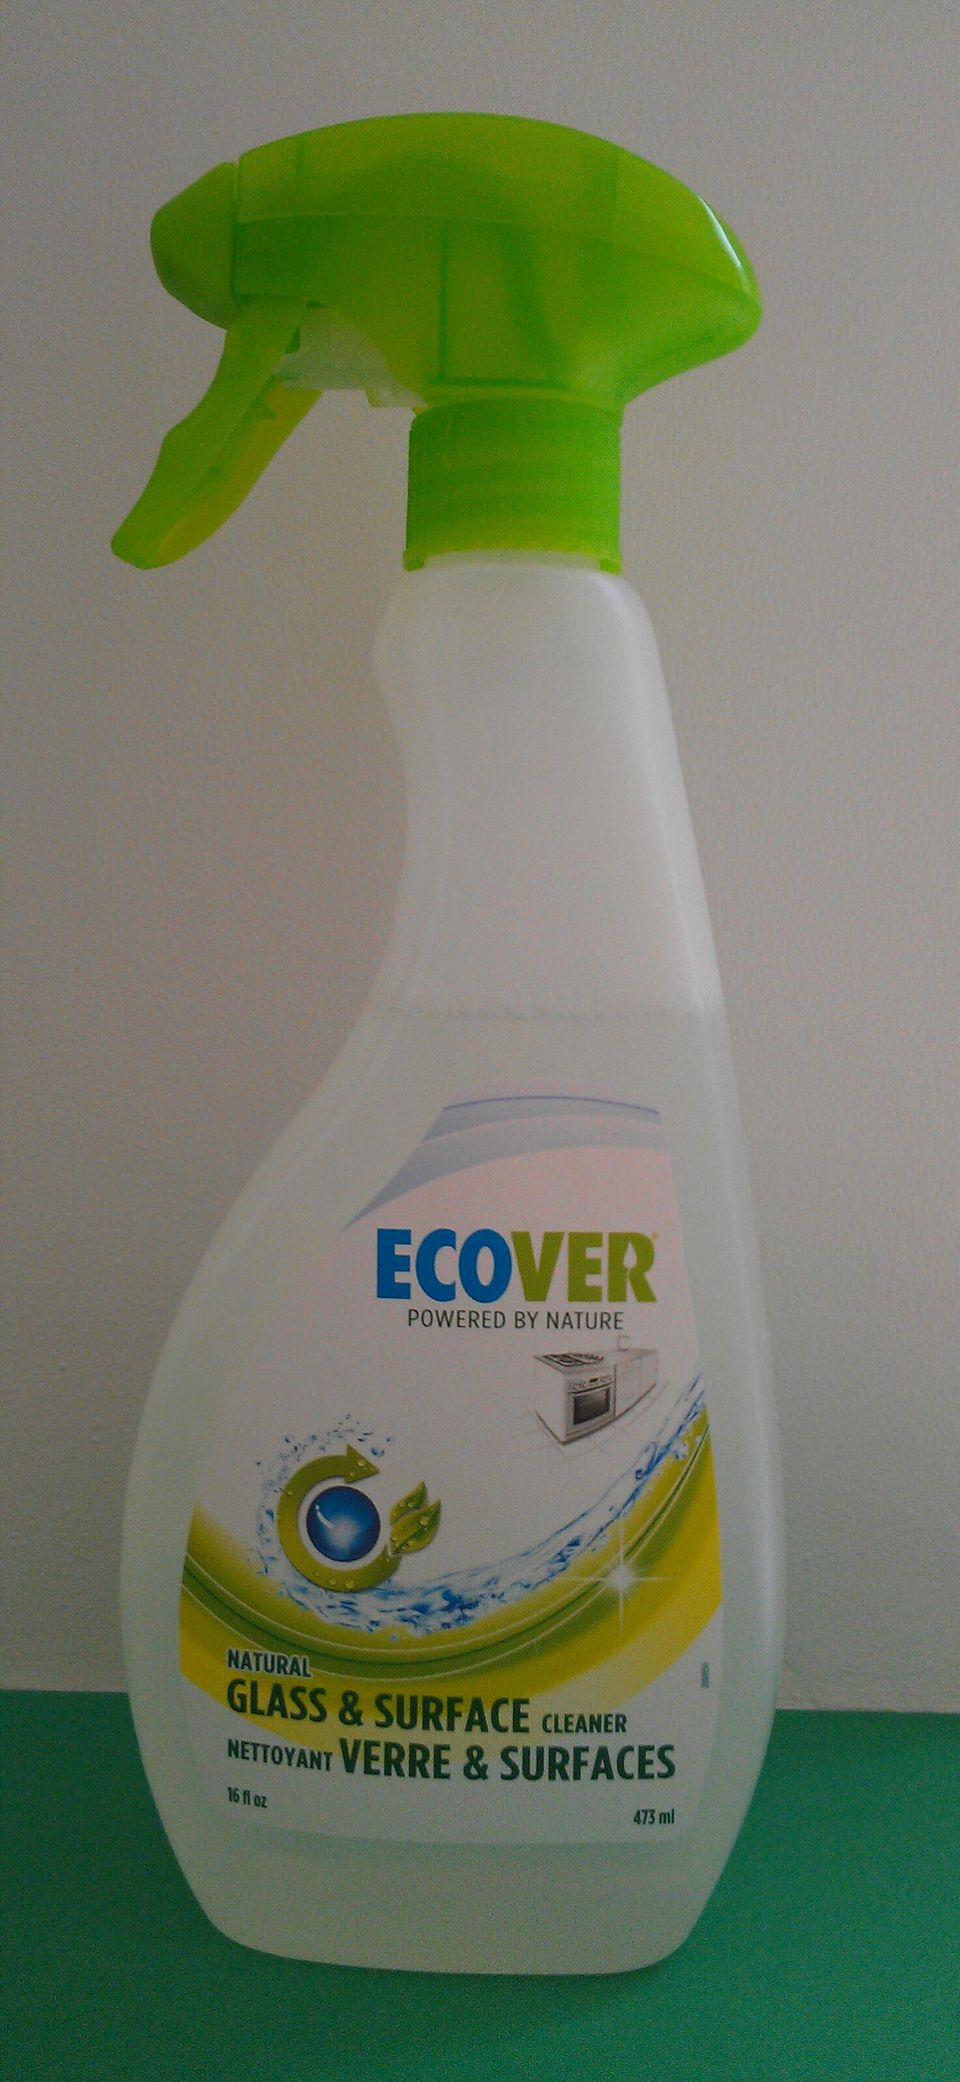 Ecover Glass & Surface Cleaner